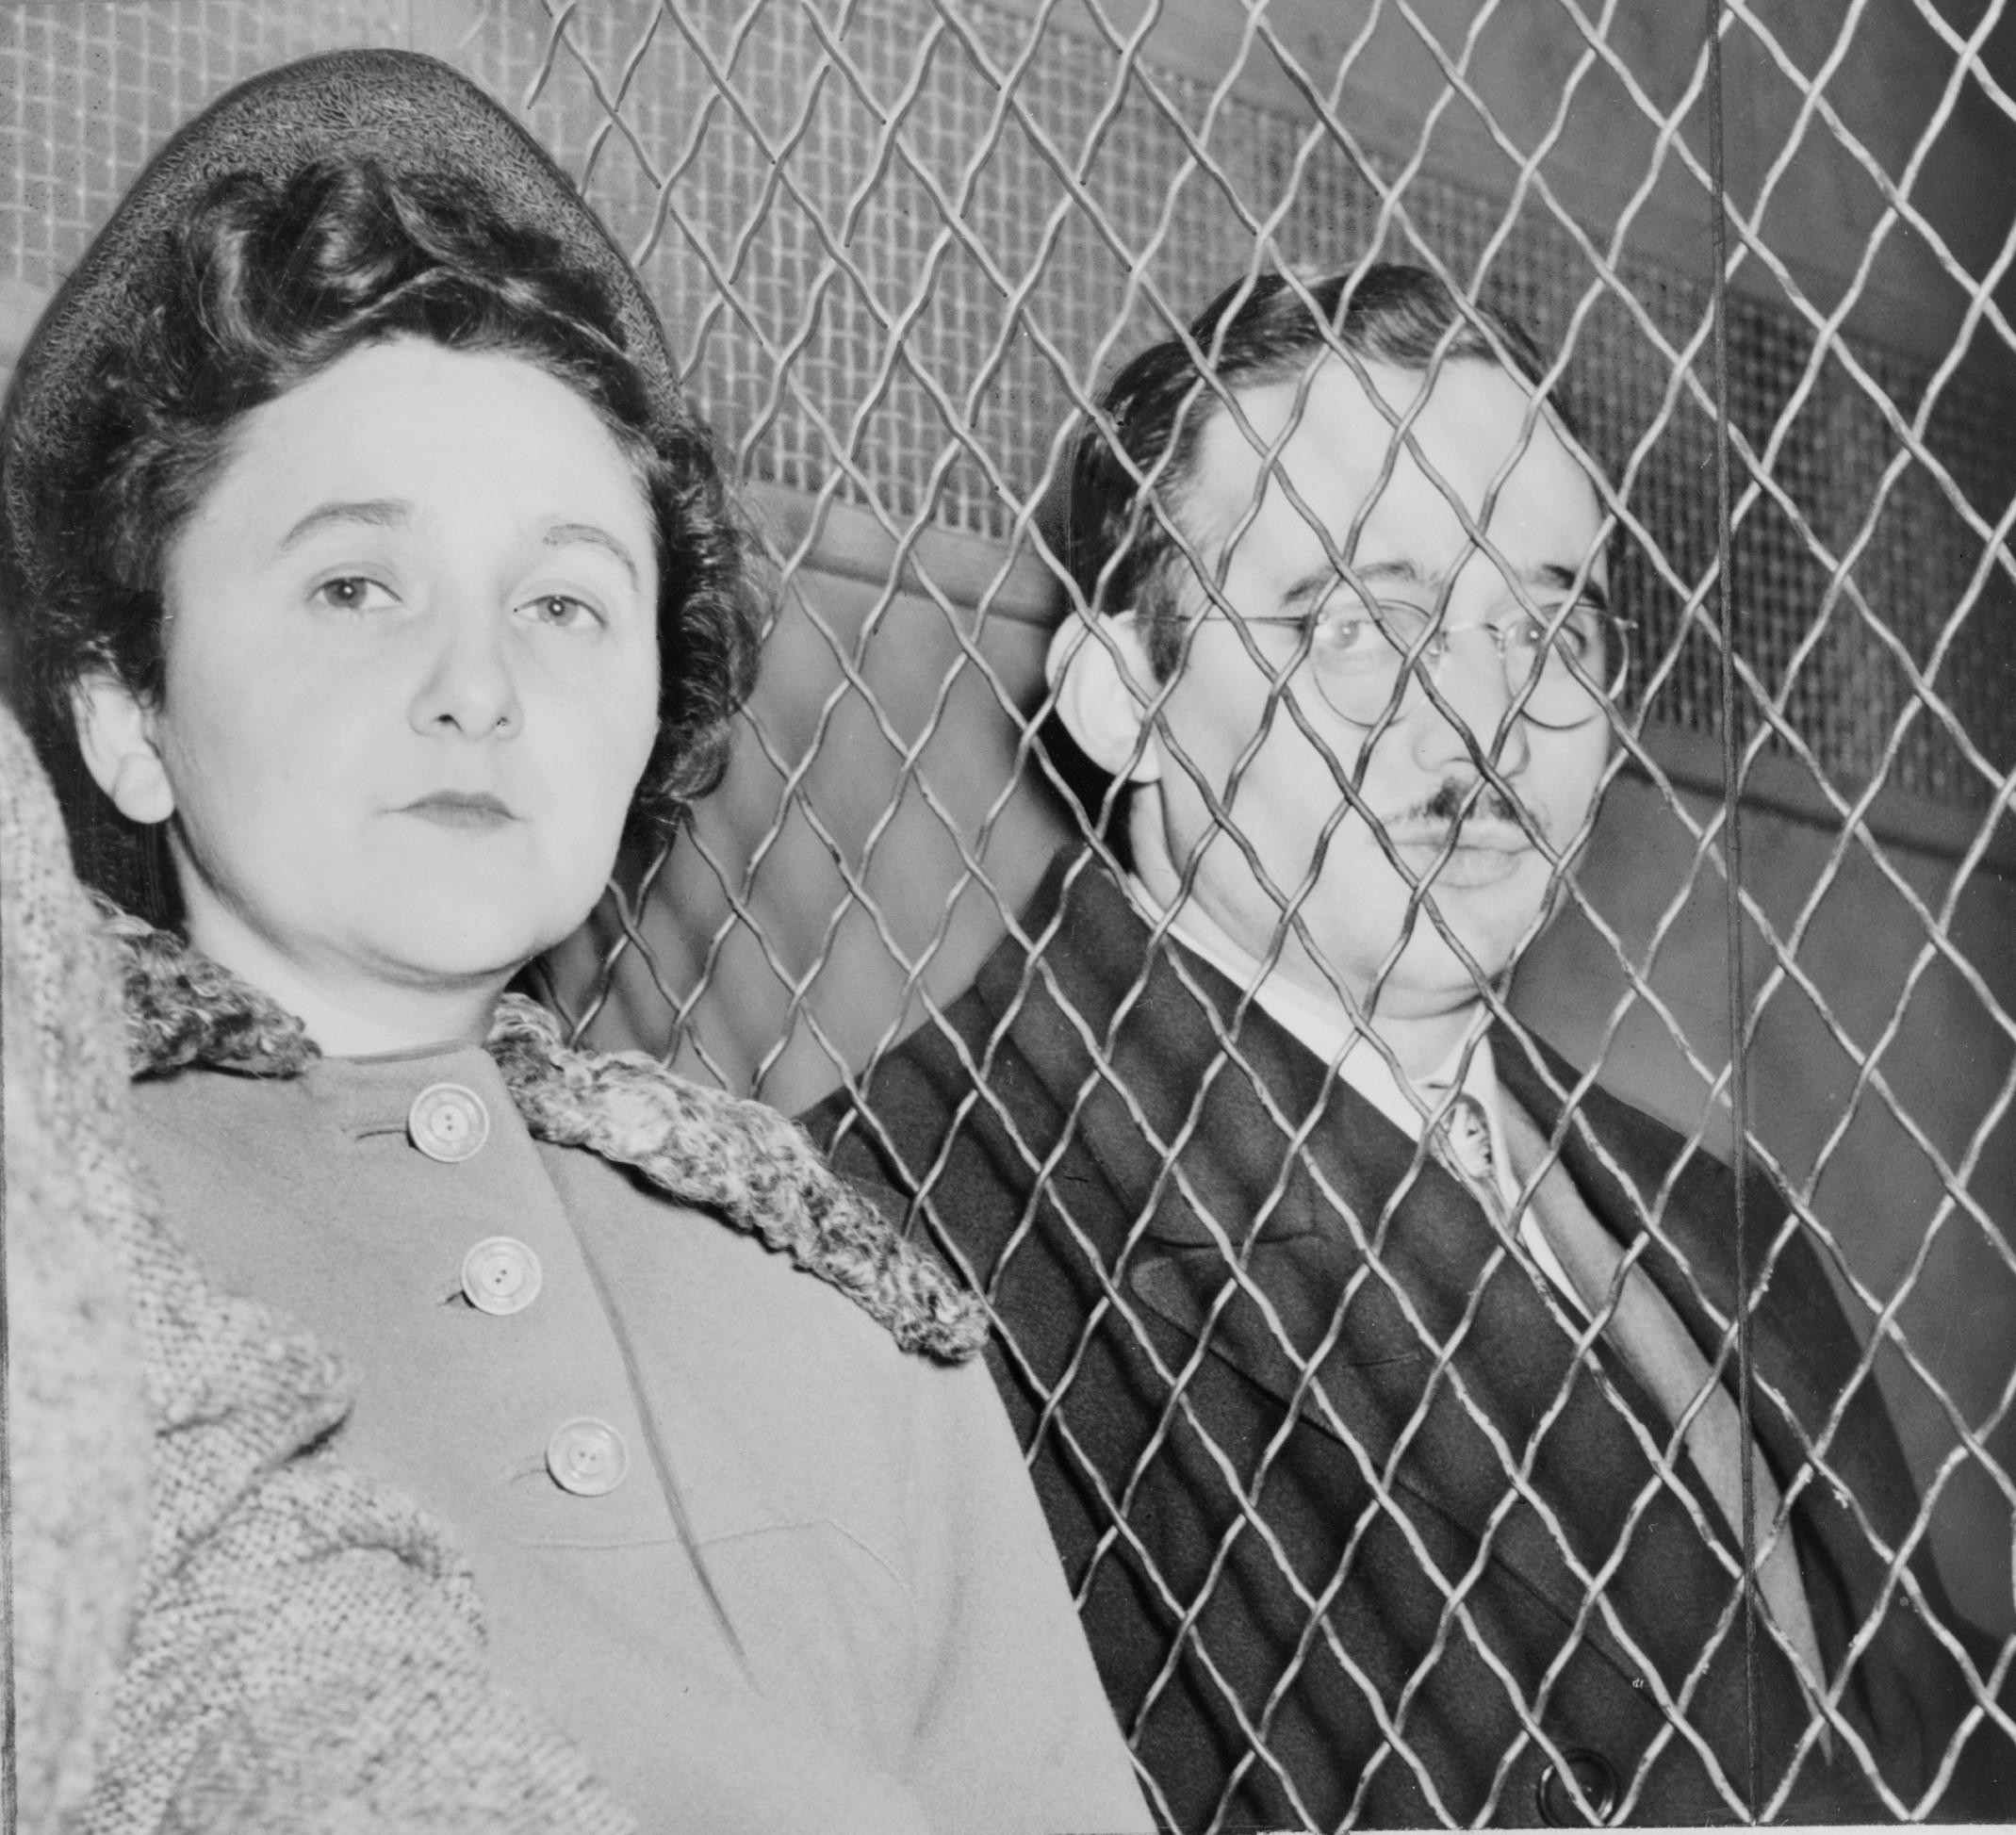 Ethel and Julius Rosenberg sitting on either side of a chain link fence